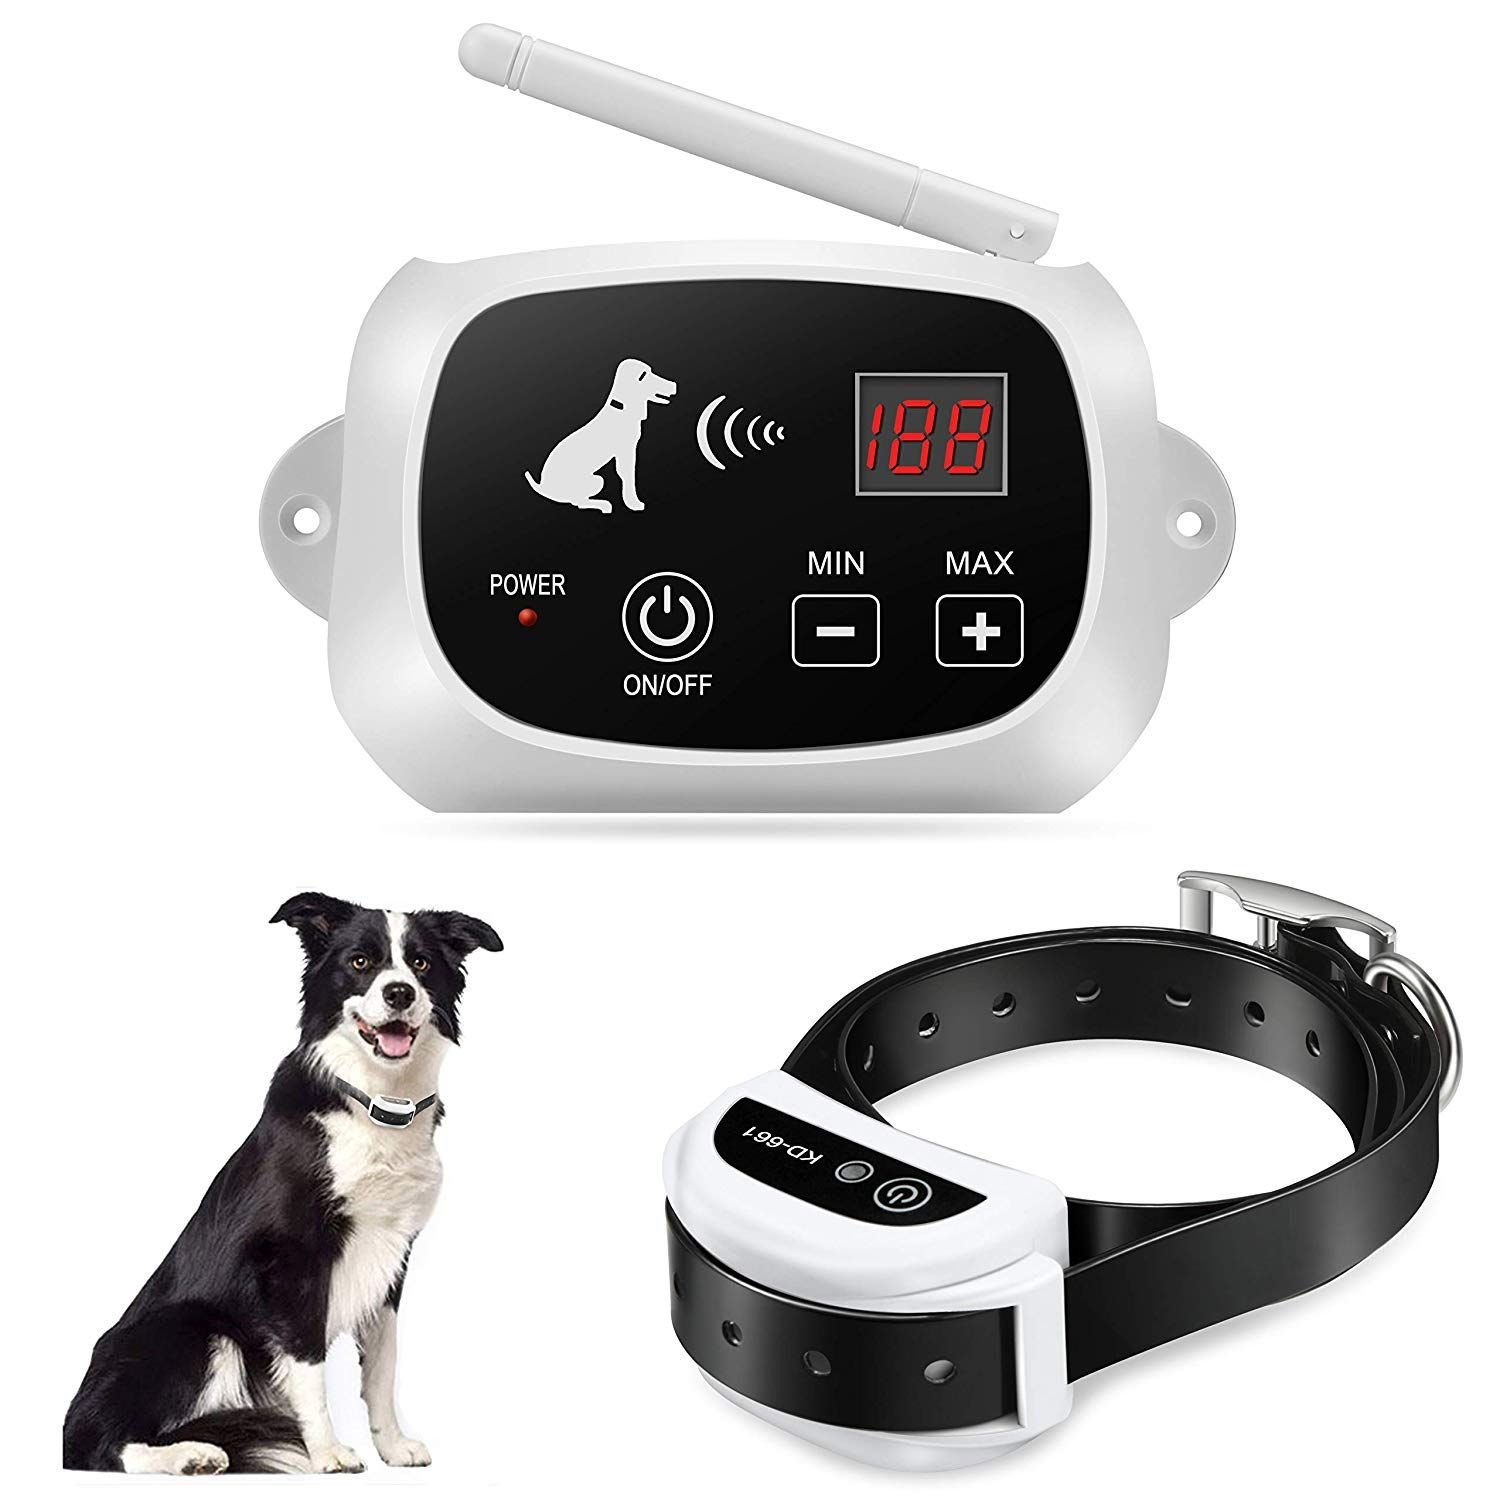 Focuser Electric Wireless Dog Fence System Pet Containment System For Dogs And Pets Wireless Dog Fence Dog Fence Training Collar